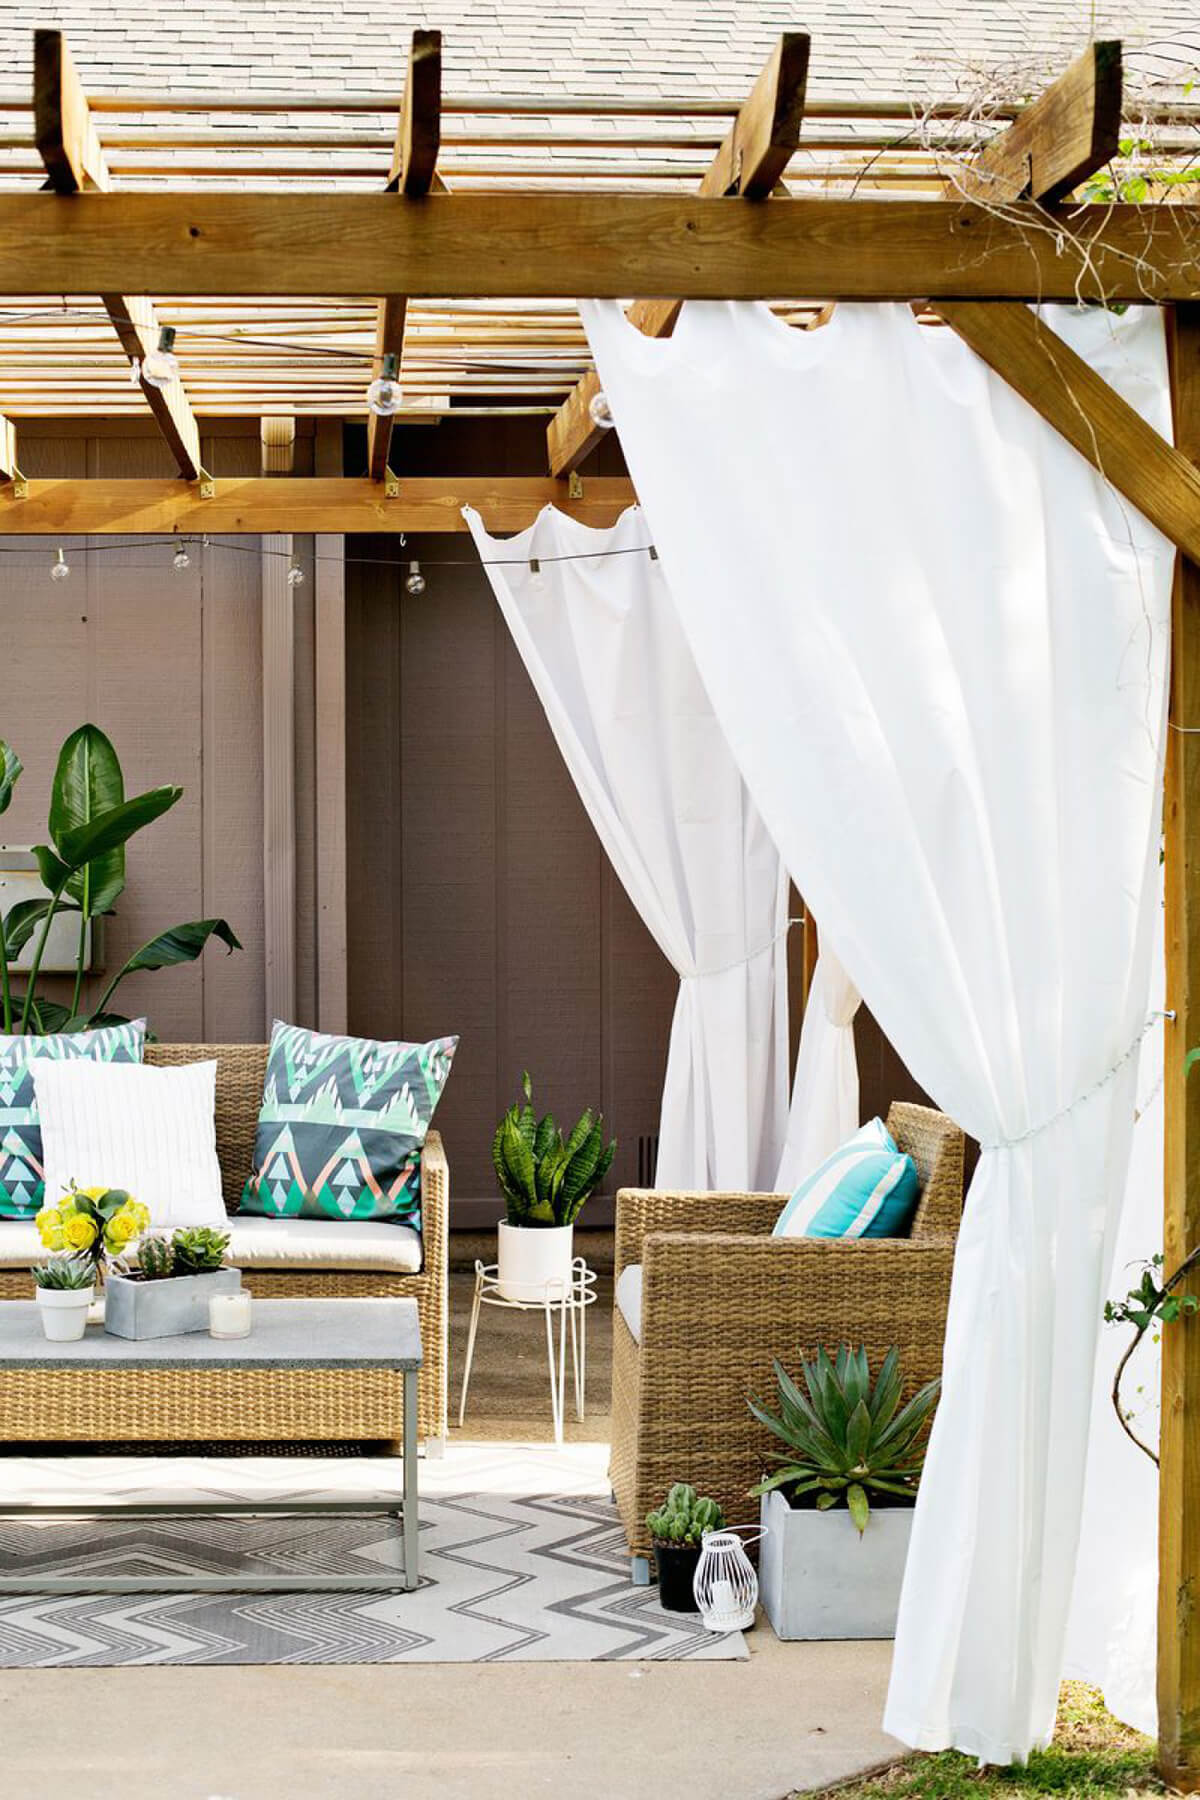 Stylish Privacy Curtains on a Pergola